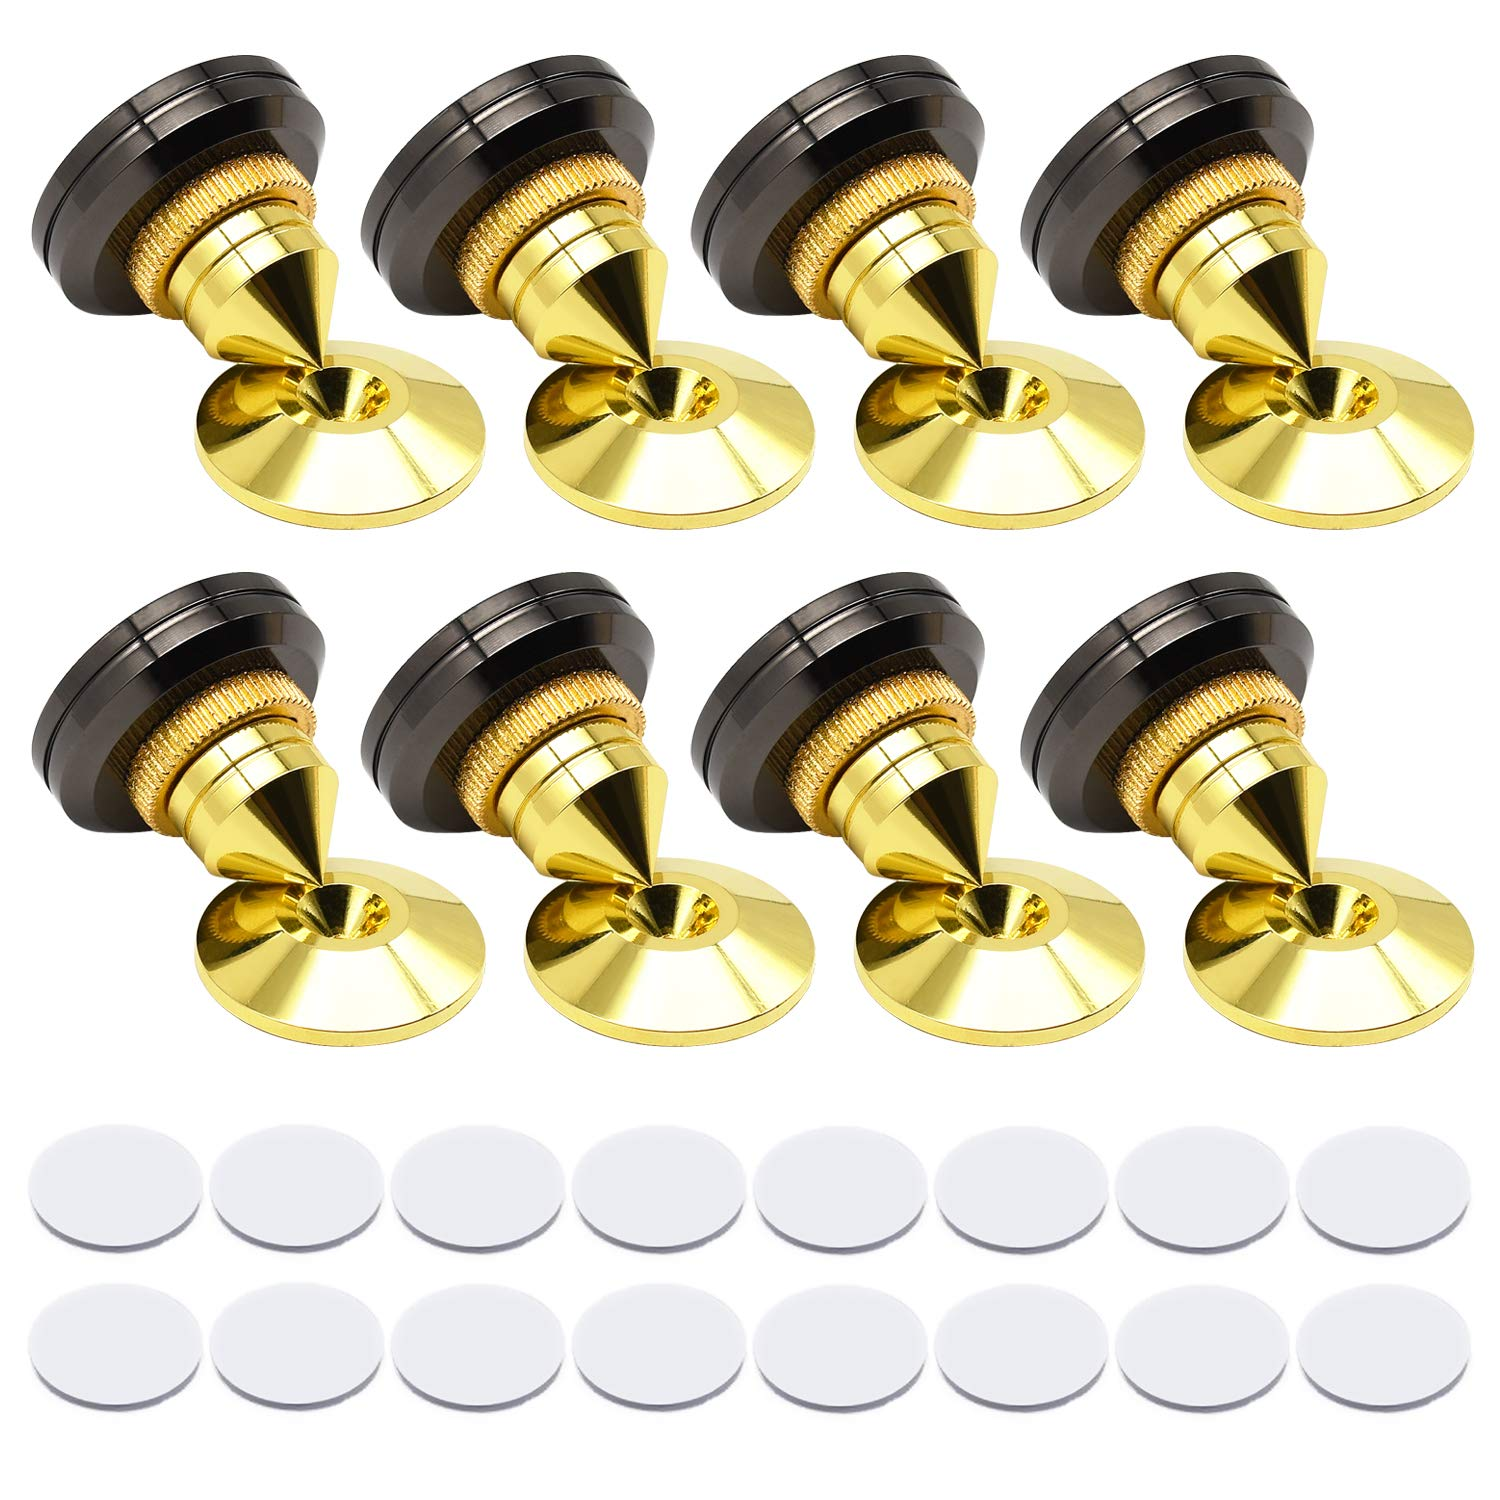 8 Set Golden Speaker Spikes, Speaker Stands Subwoofer CD Audio Amplifier Turntable Isolation Stand Feet Cone Base Pads